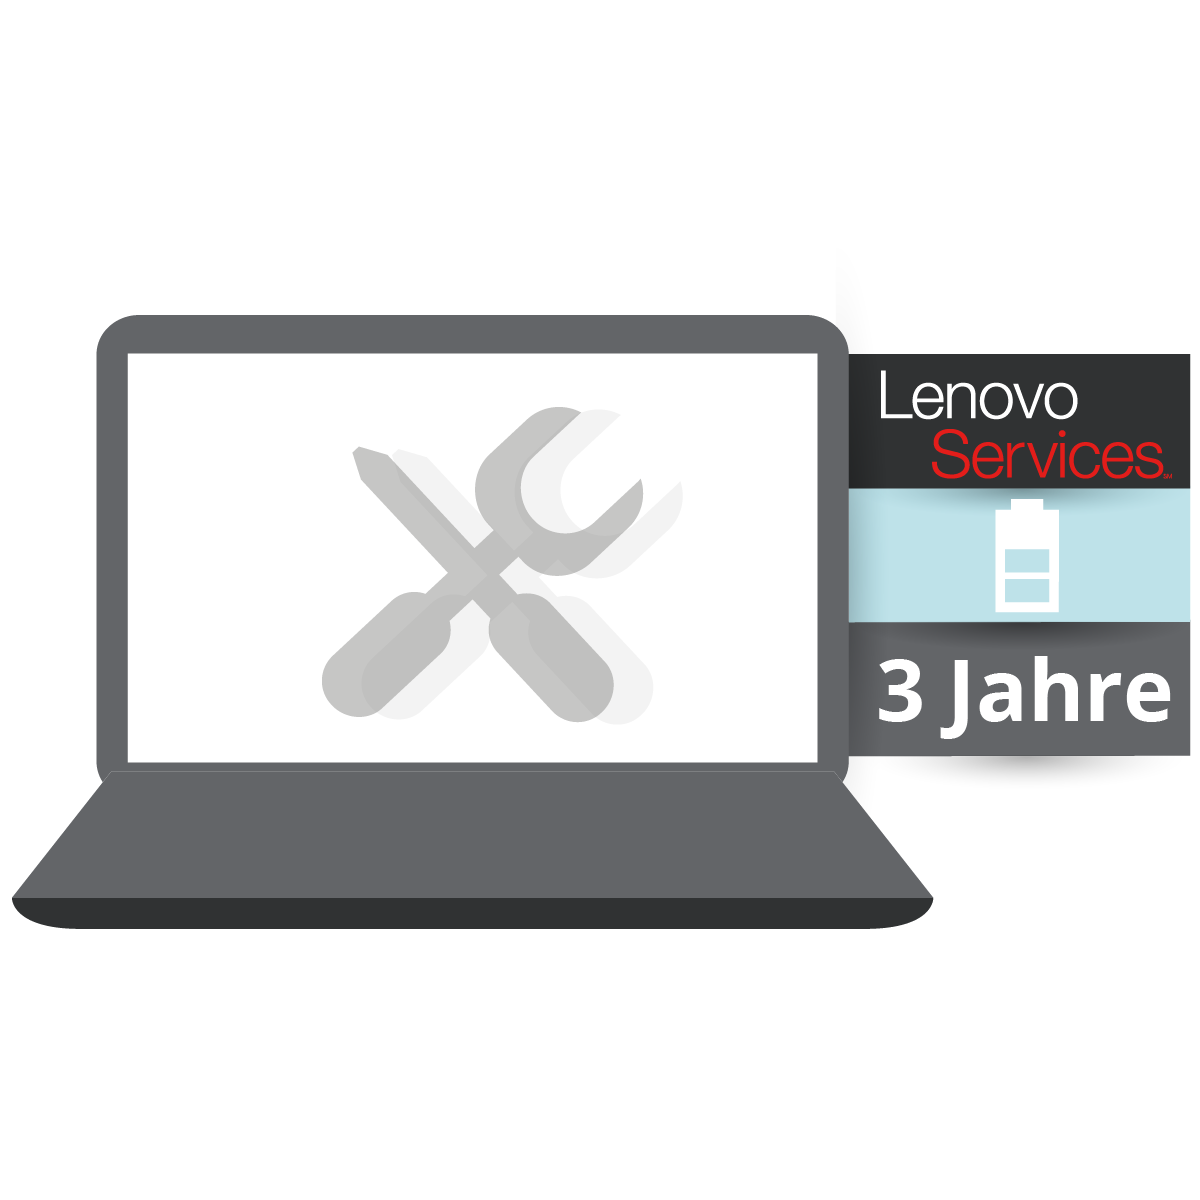 (EOL) Lenovo™ 3 Jahre Sealed Battery Replacement Service